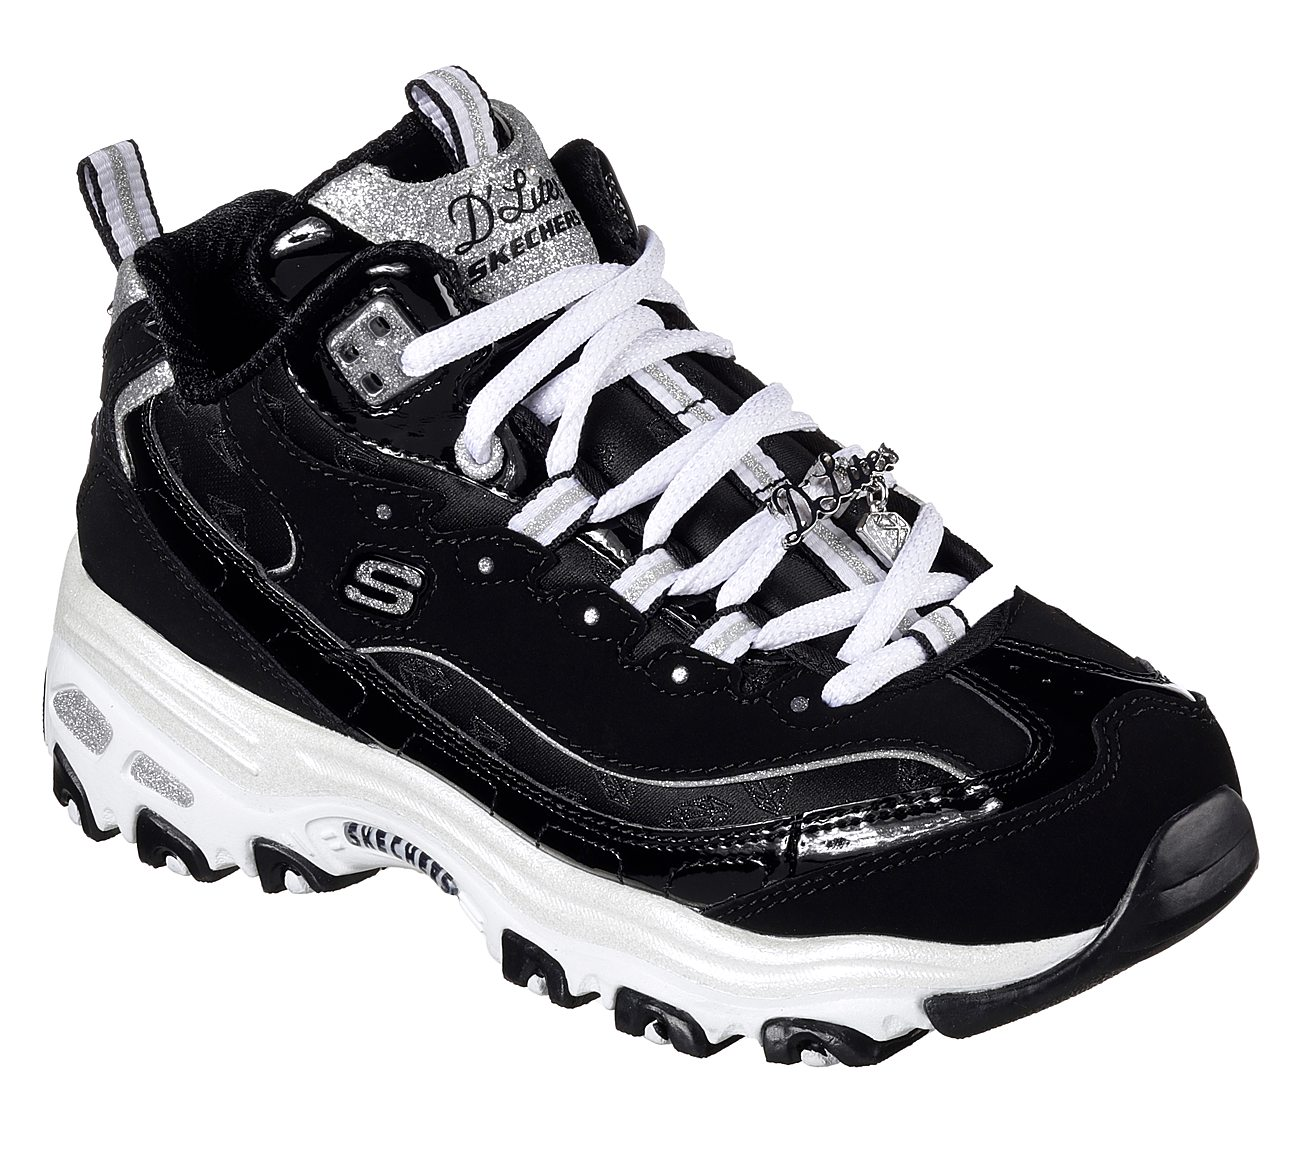 skechers old school